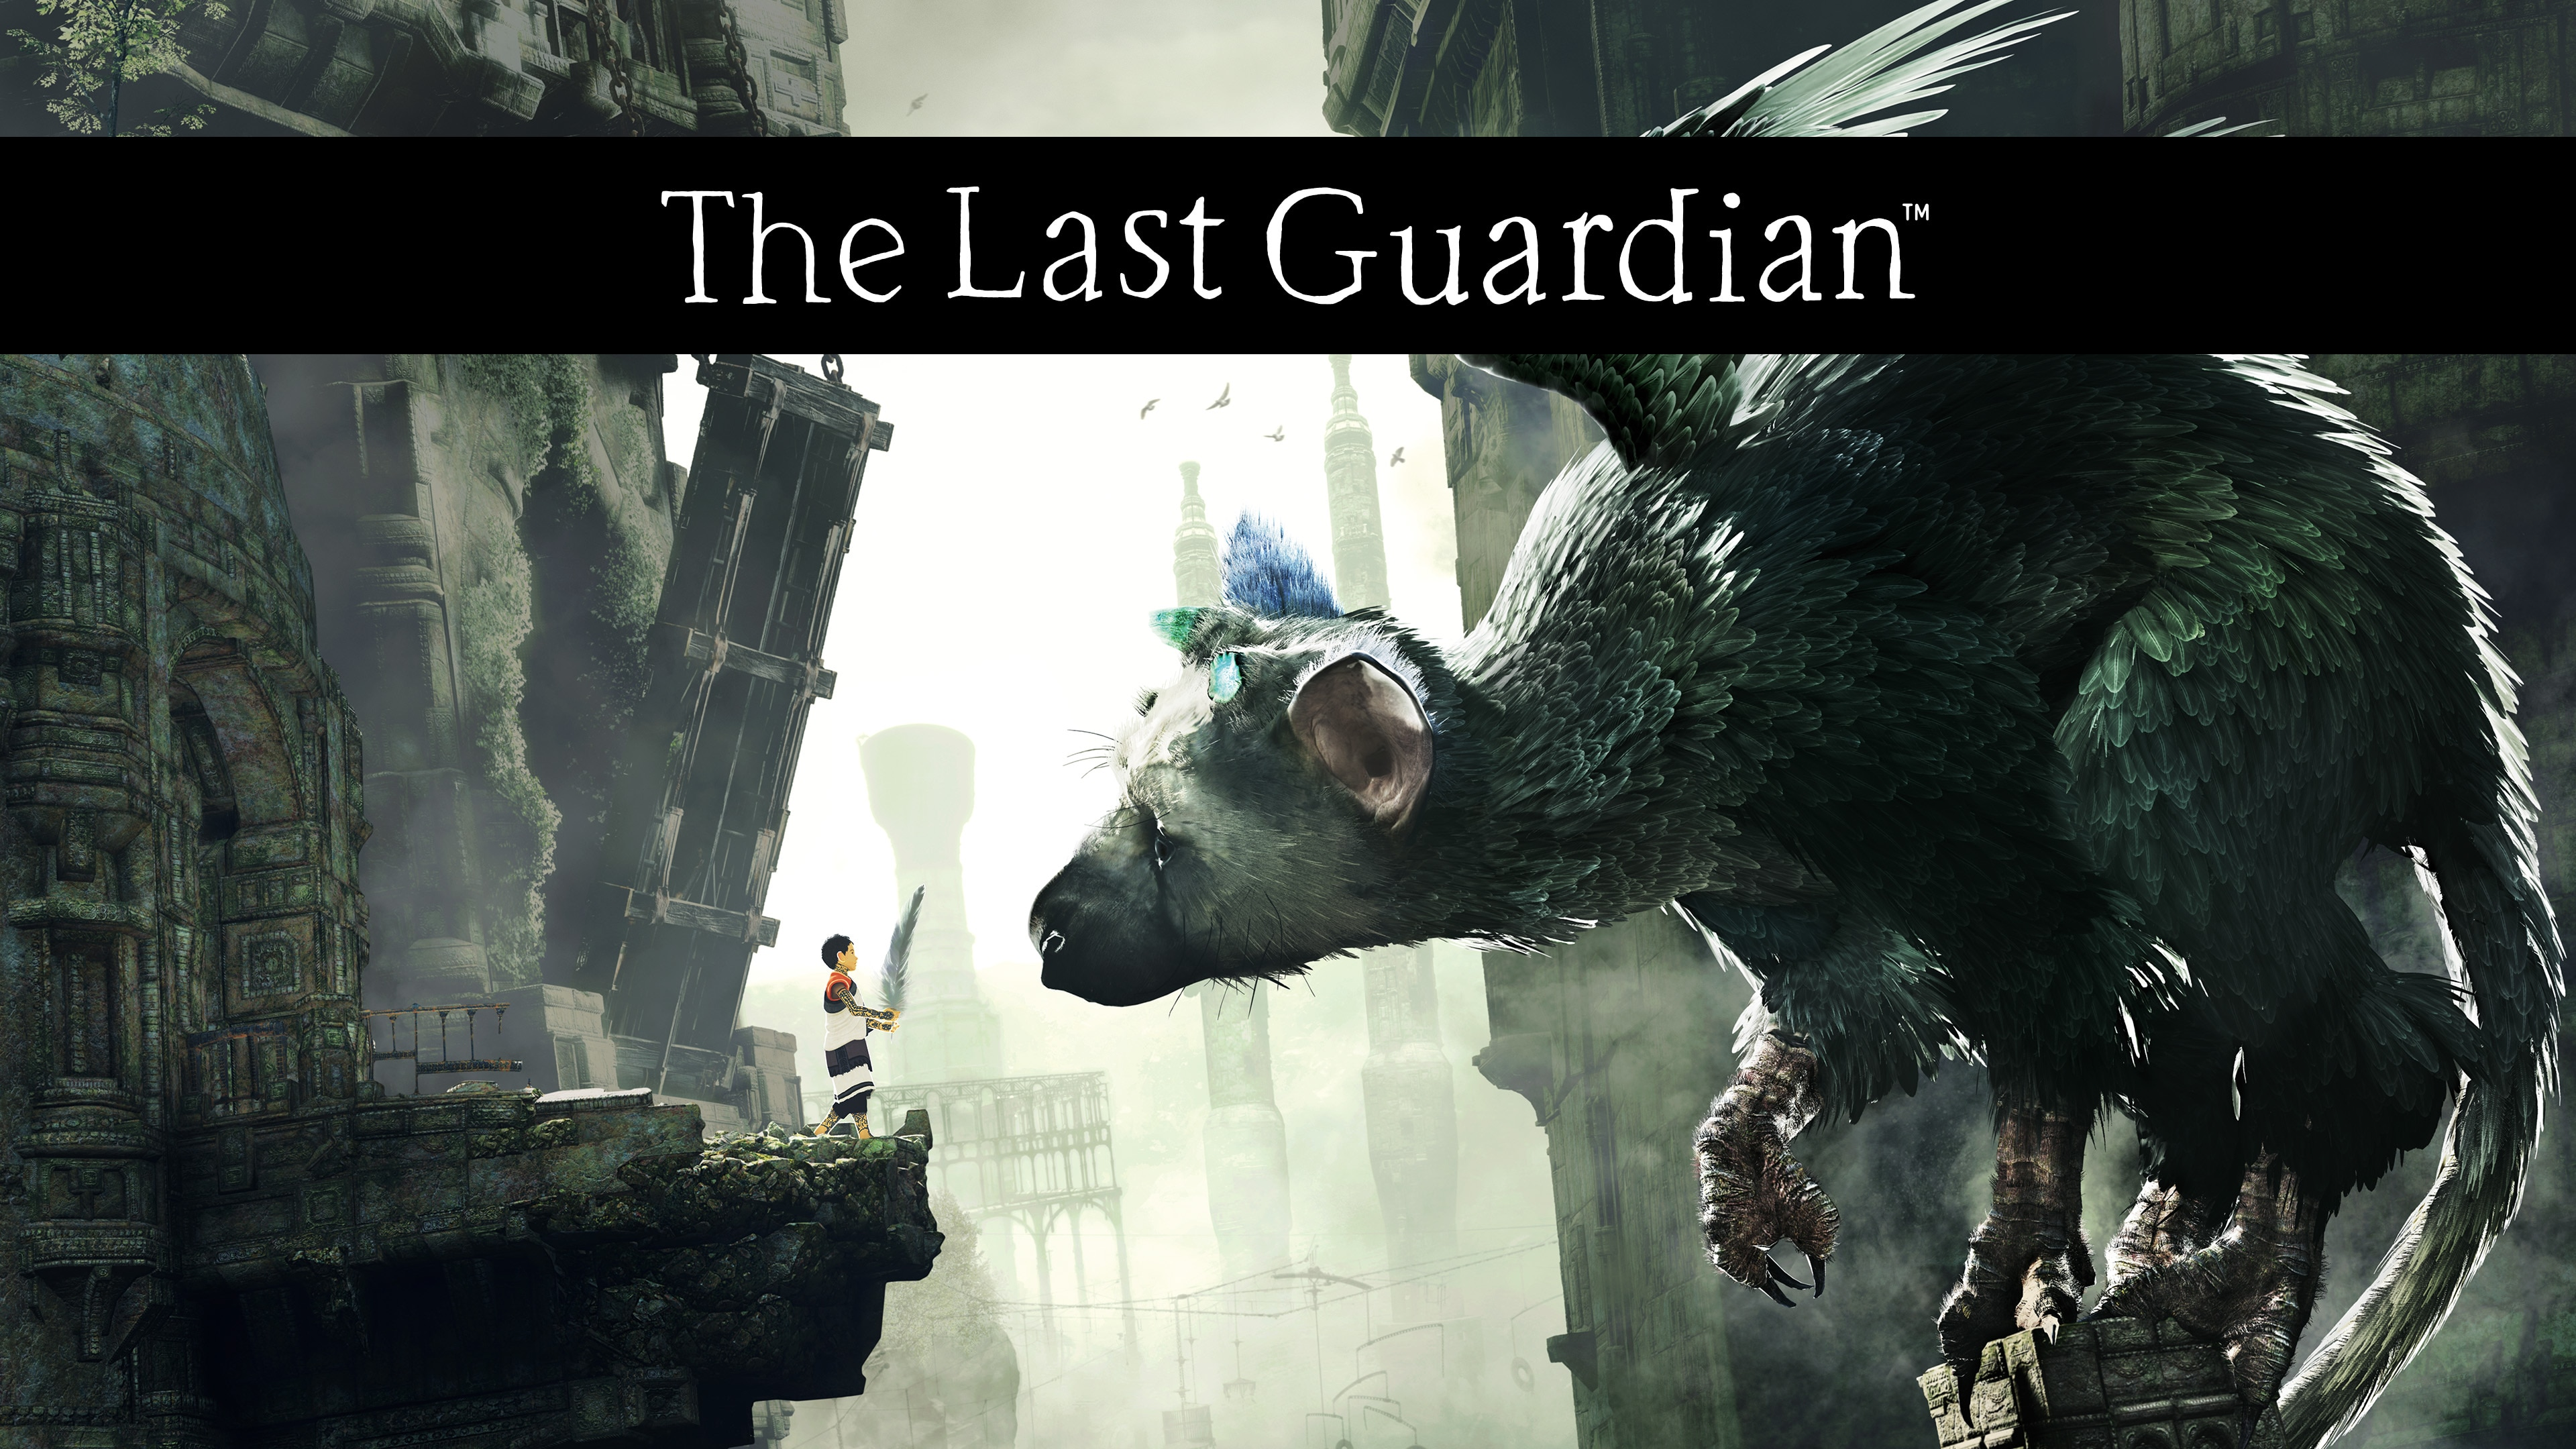 The Last Guardian™